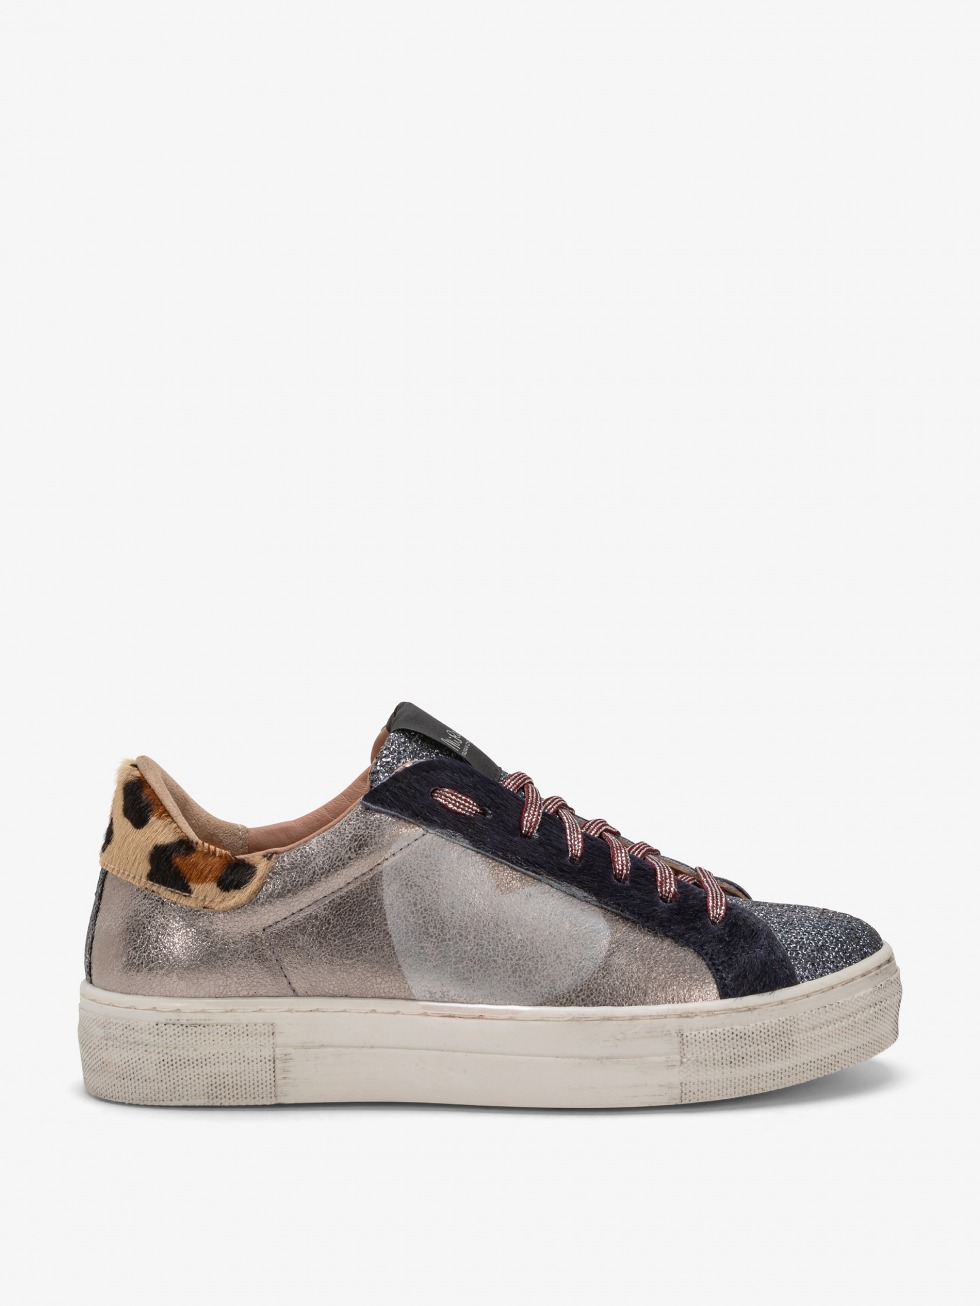 Martini Cielo Club Sneakers - Mother Of Pearl Heart